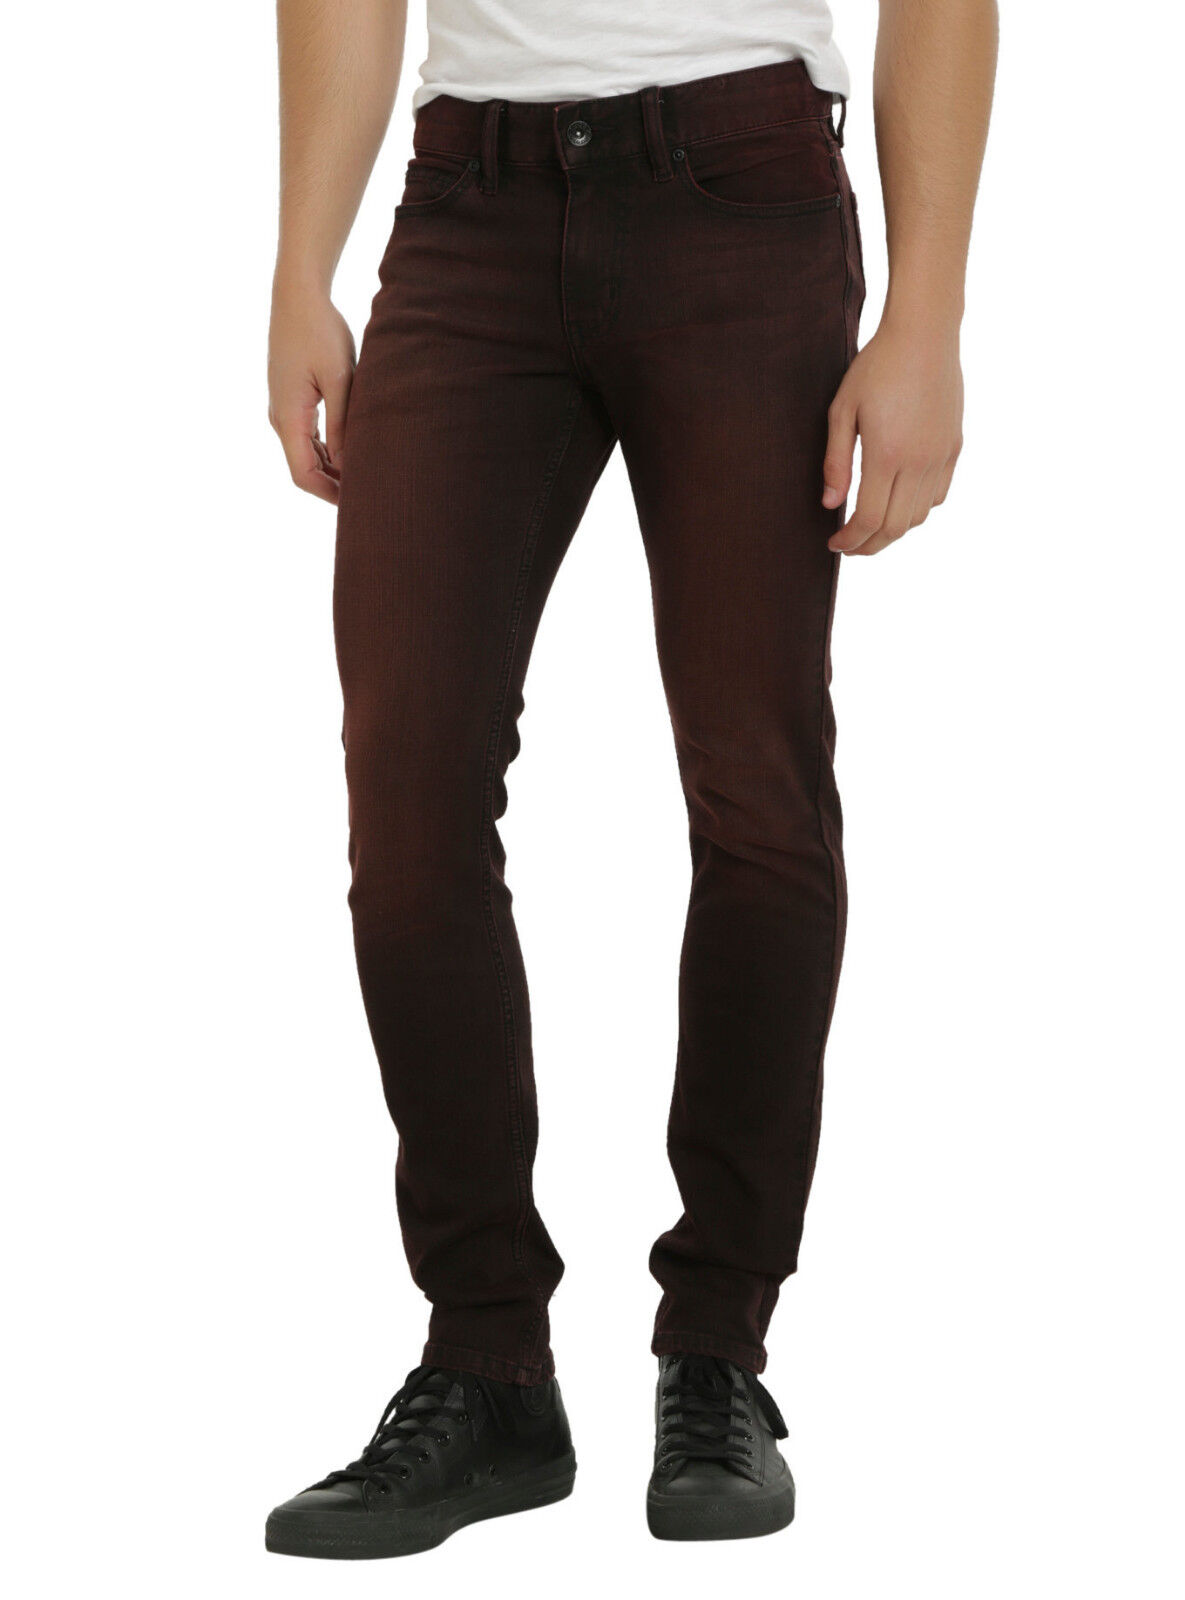 XXX RUDE Red Over-dye Wash Skinny Fit Jeans Men's Pants 28  Waist 32  Inseam NEW